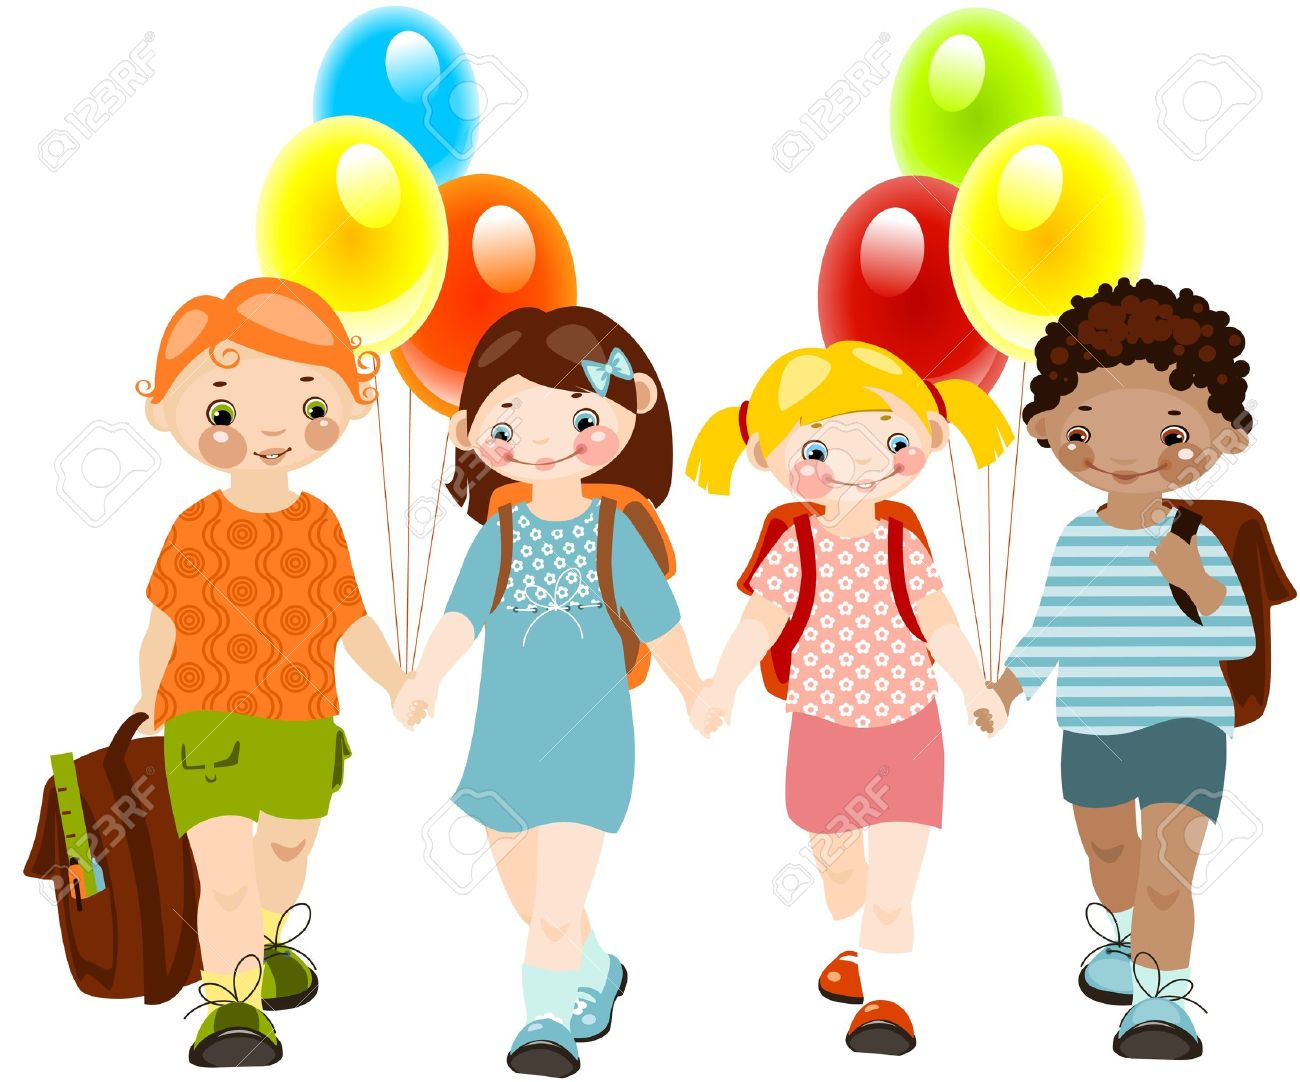 Happy Kids With Balloons. School Childhood. School Friends.